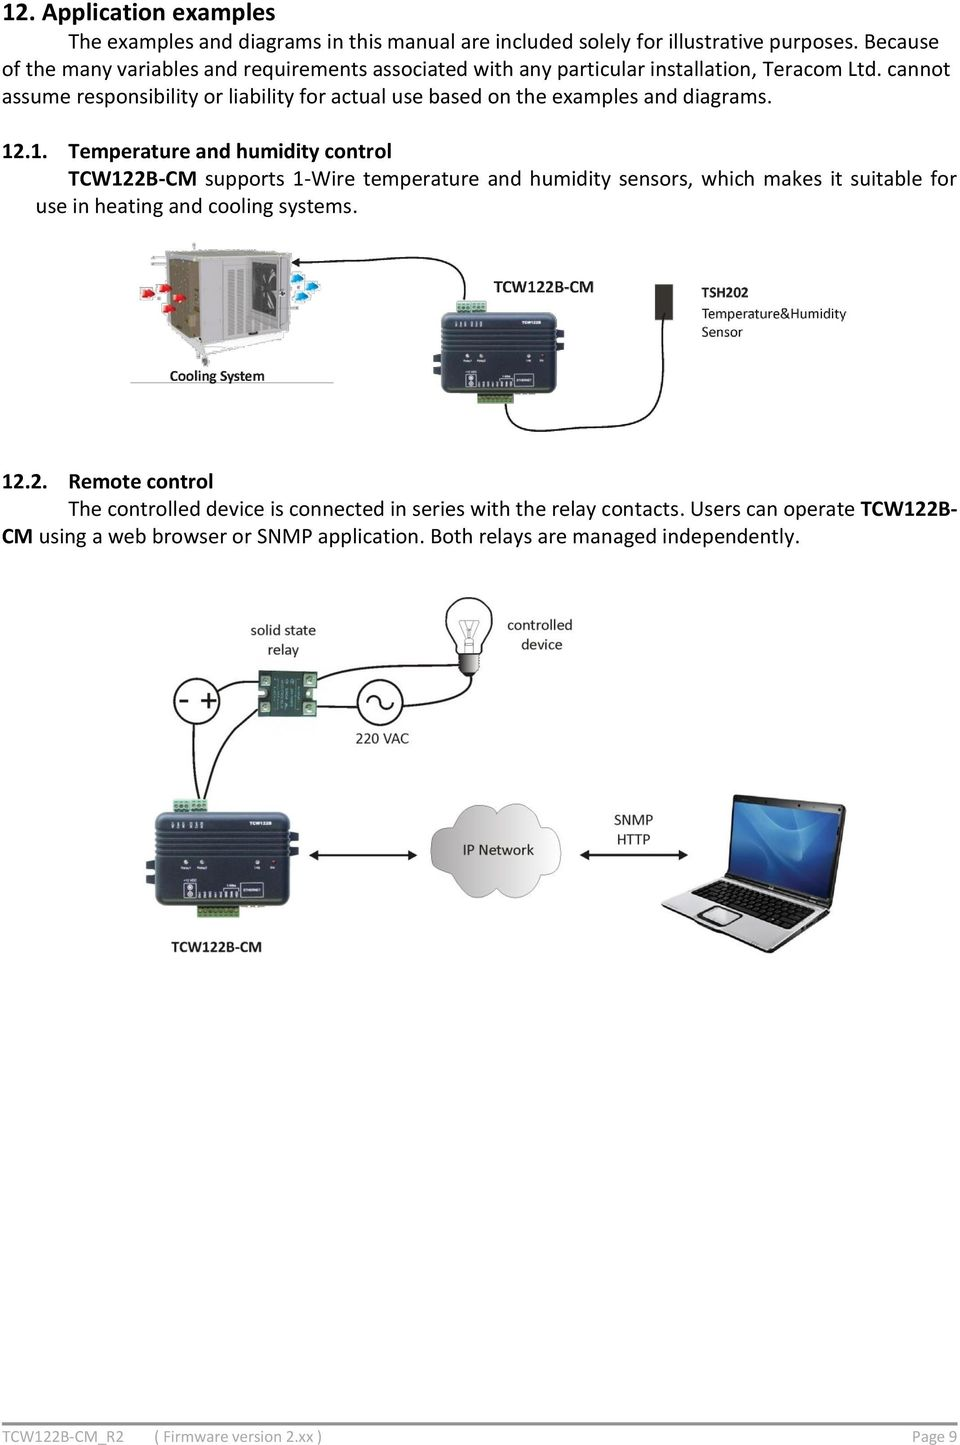 Ethernet Controller Tcw122b Cm Firmware Version 2xx User Manual Pdf Humidity Control Wiring Diagram Cannot Assume Responsibility Or Liability For Actual Use Based On The Examples And Diagrams 12